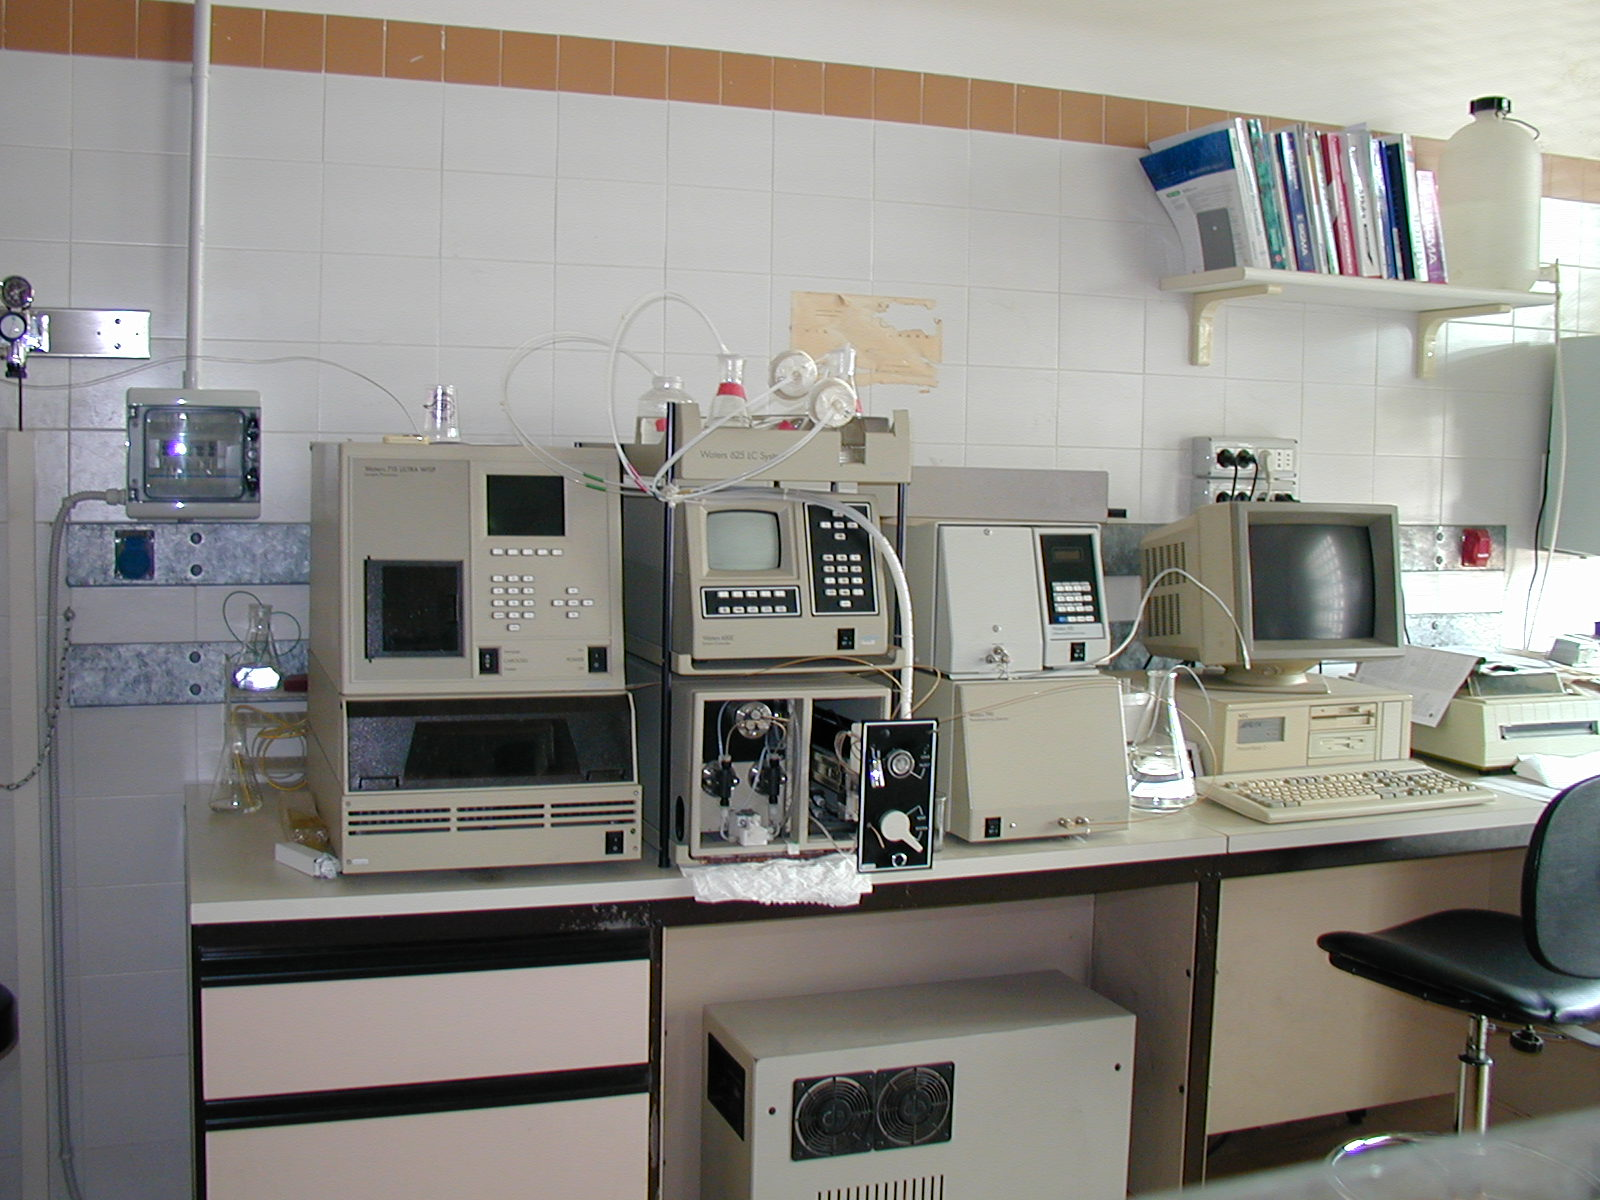 Chromatography in HPLC